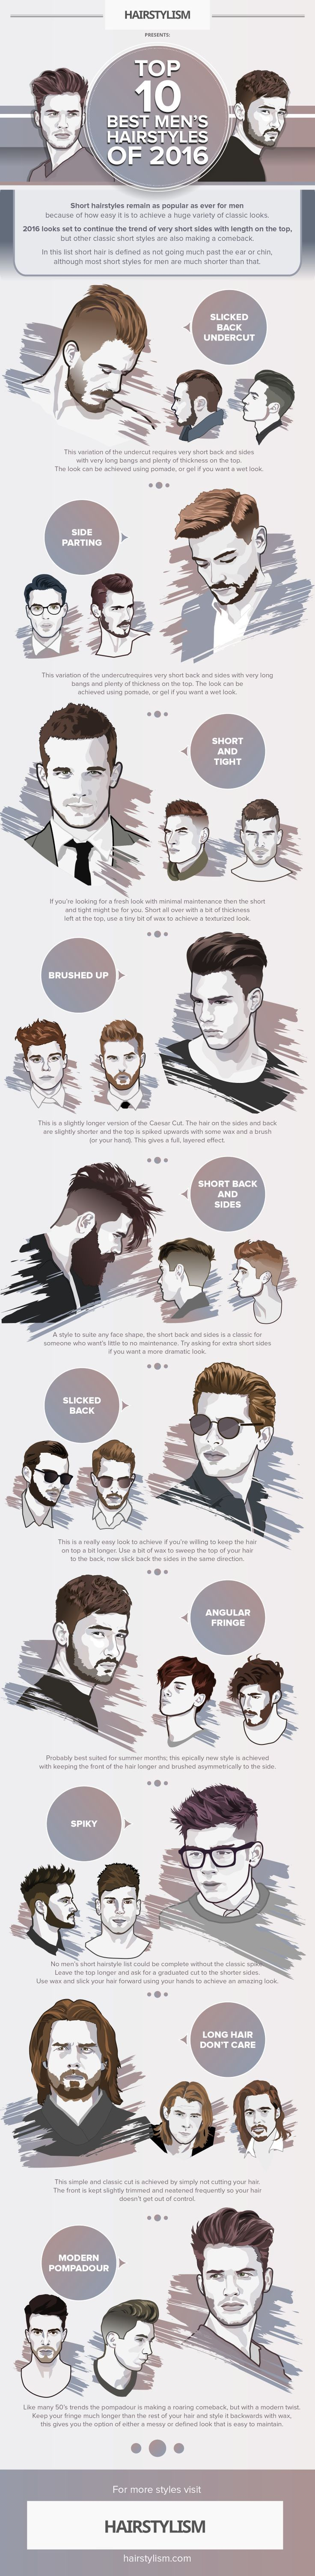 Medium short haircut men these are the  most popular hairstyles for guys right now